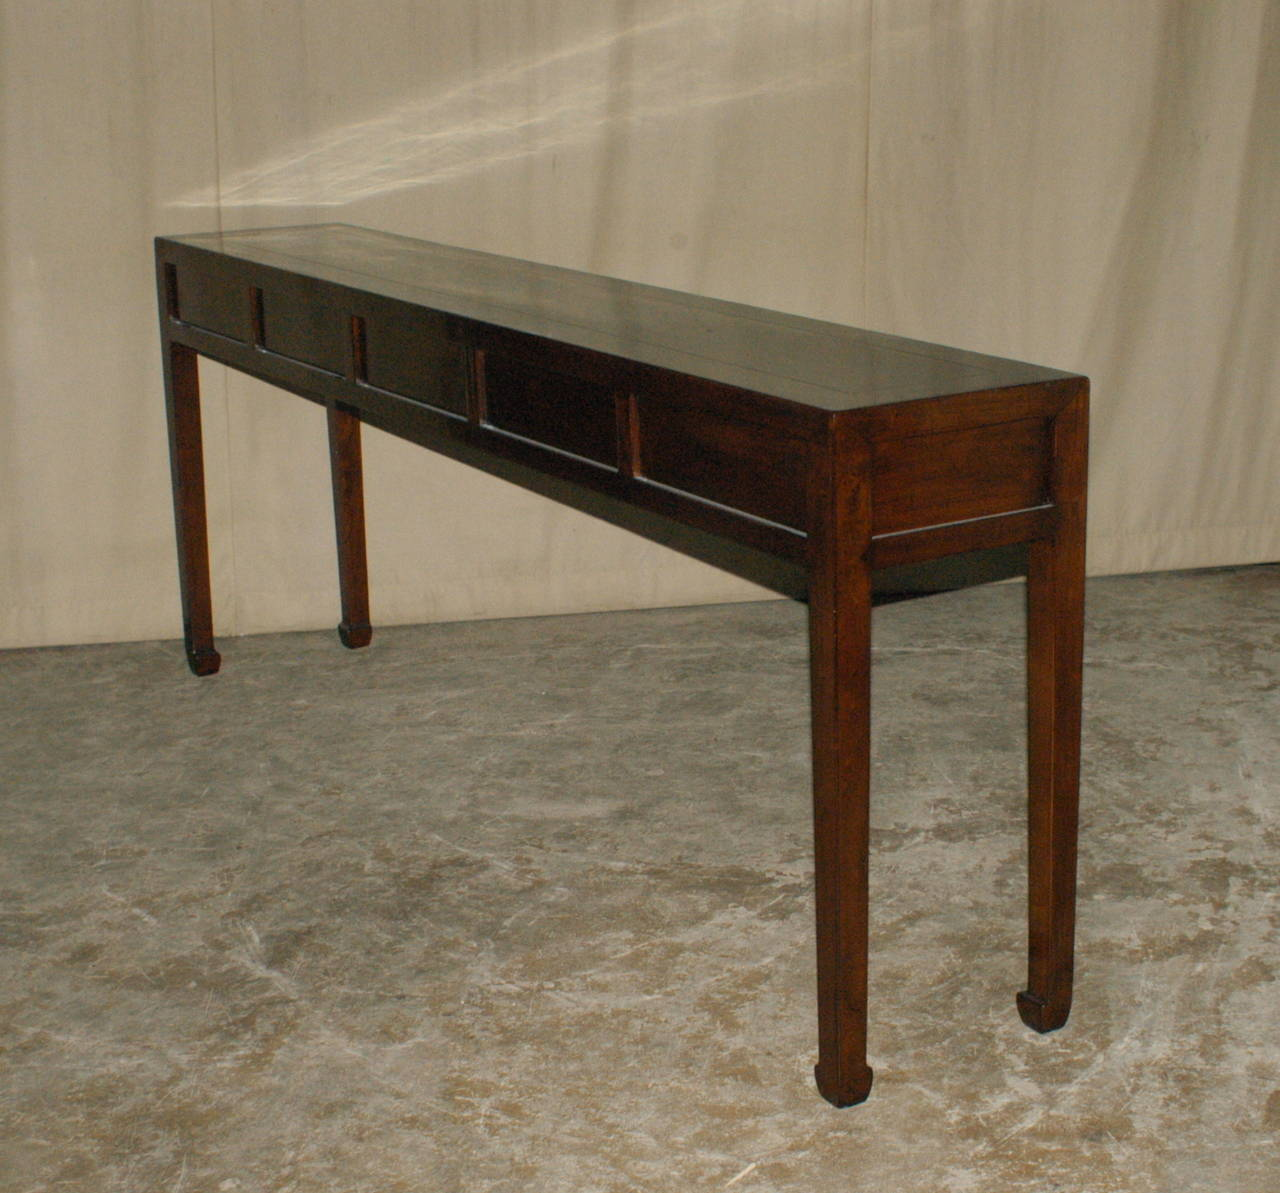 Marvelous photograph of Fine Ju Mu Wood Console Table with Drawers at 1stdibs with #332013 color and 1280x1193 pixels